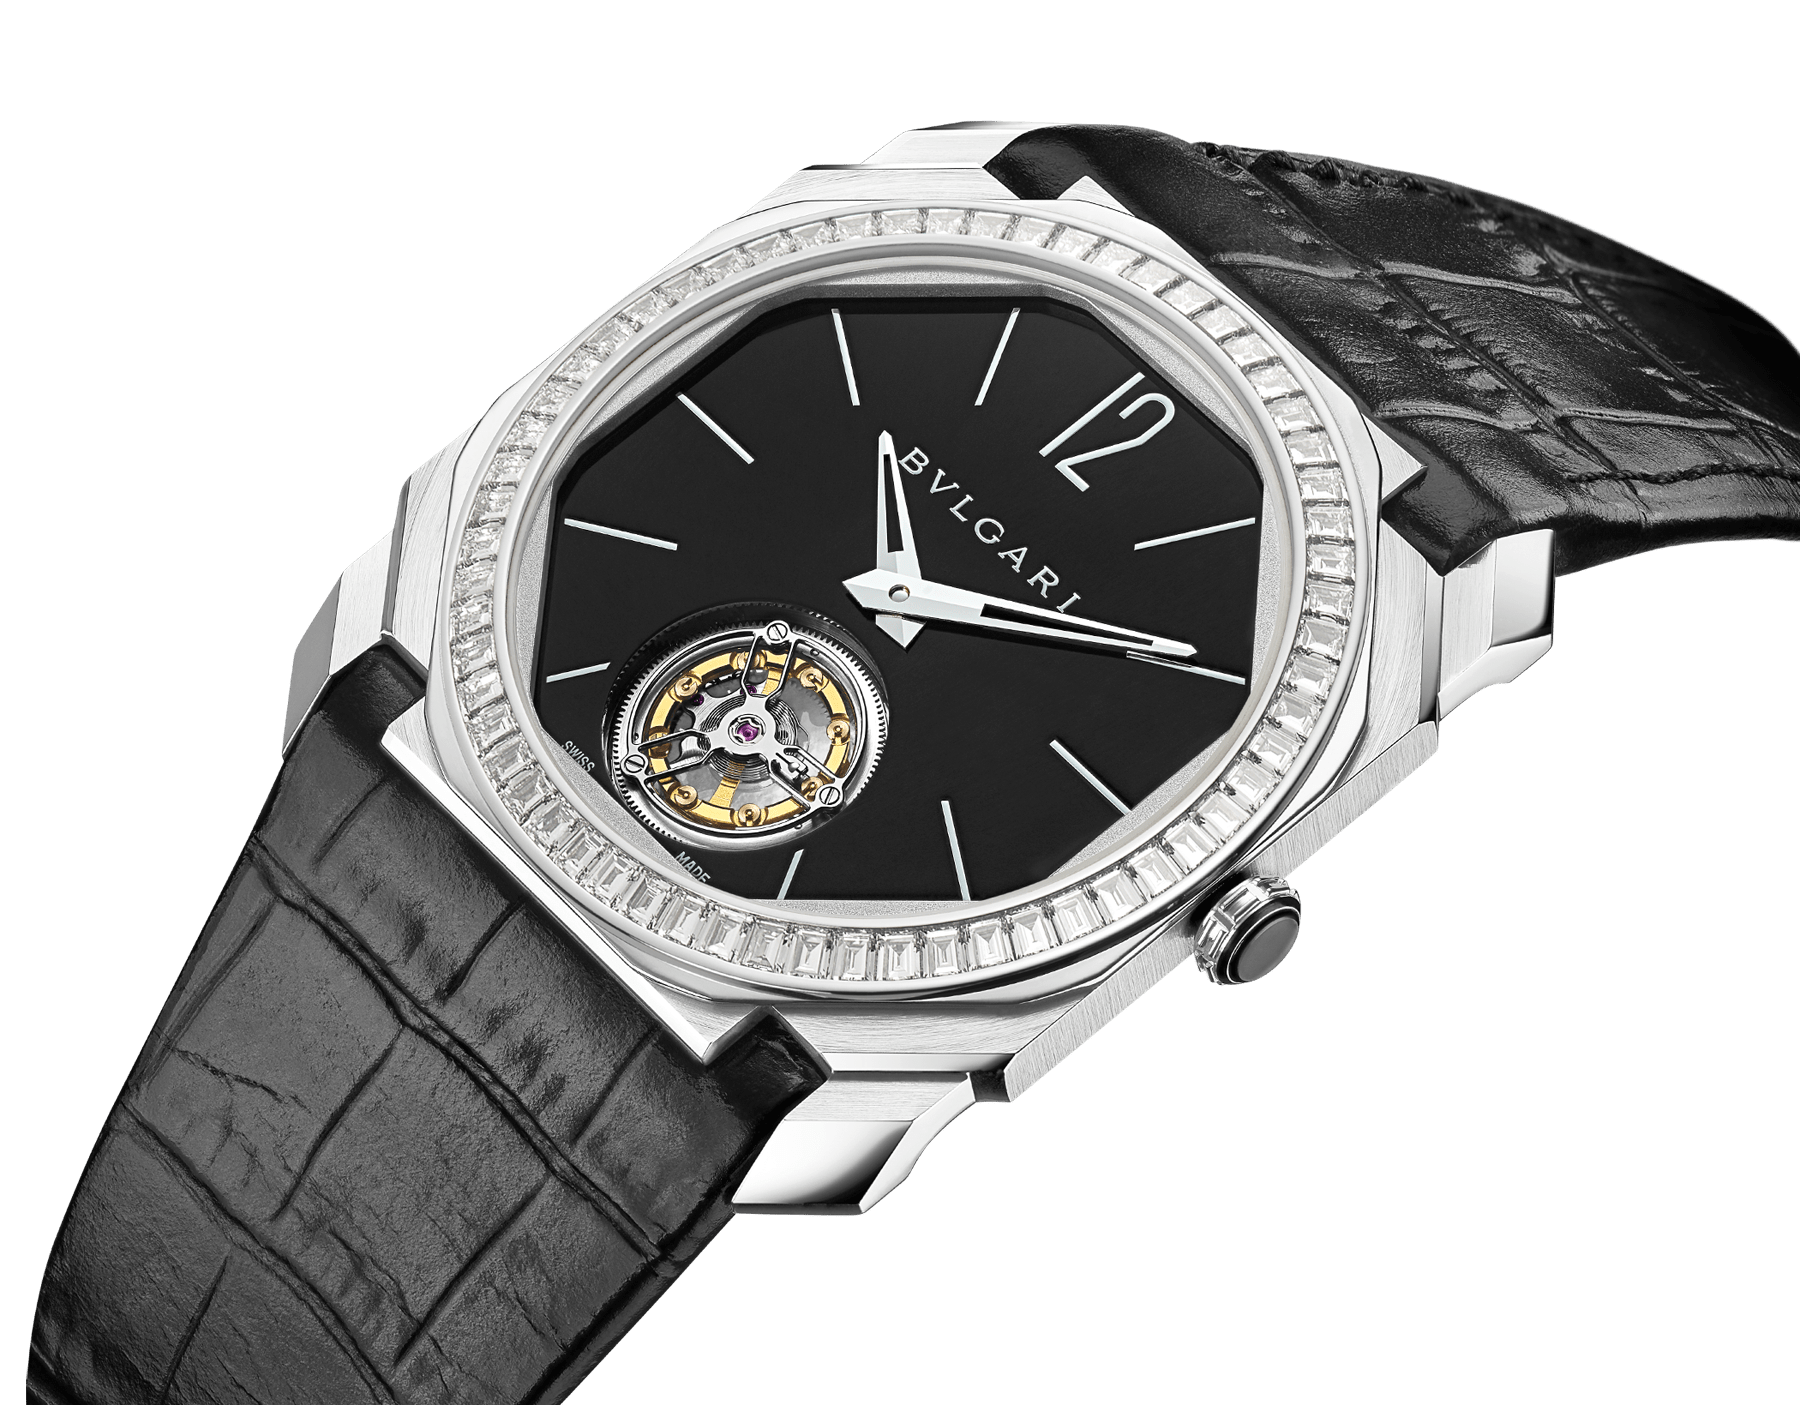 Octo Finissimo Tourbillon Limited Edition watch with extra thin mechanical manufacture movement and manual winding, platinum case, bezel set with baguette-cut diamonds, black lacquered dial with tourbillon see-through opening and black alligator bracelet. 102401 image 2